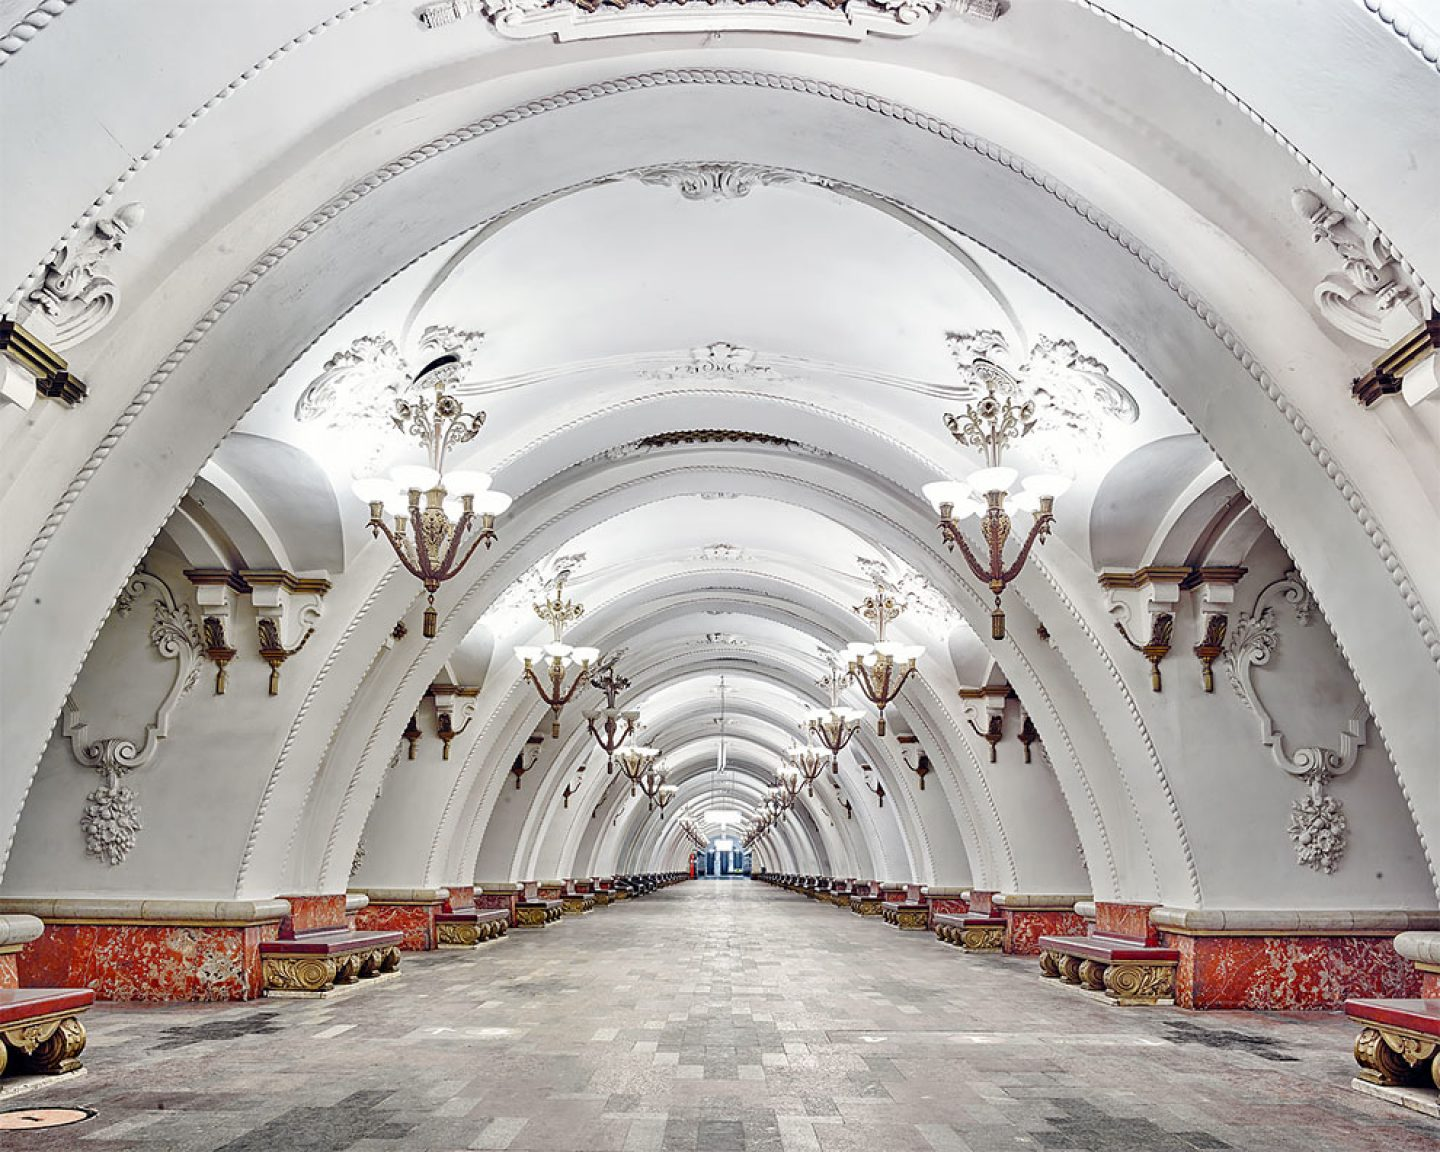 Photography_Moscow_Stunning_Underground_Network_David_Burdeny 03